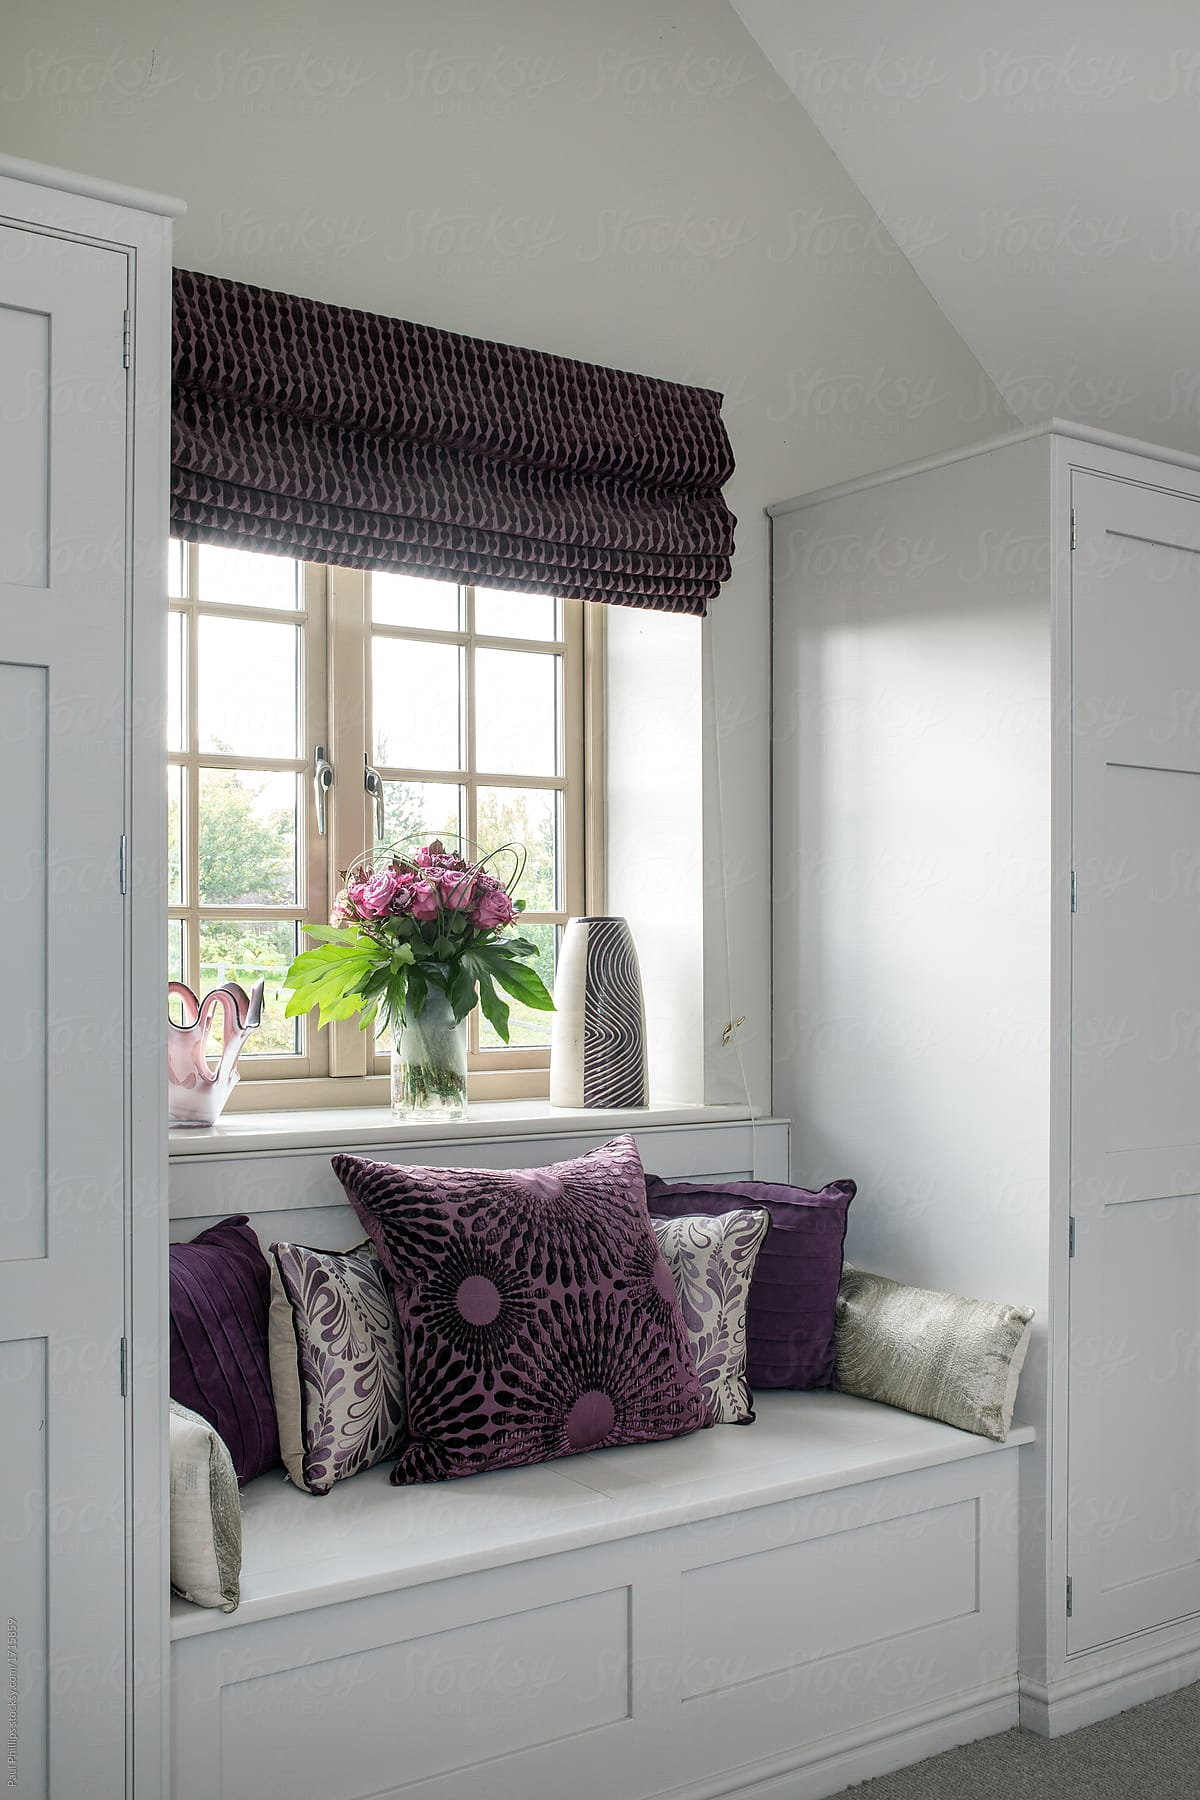 Integrated bedroom storage units around a window with matching